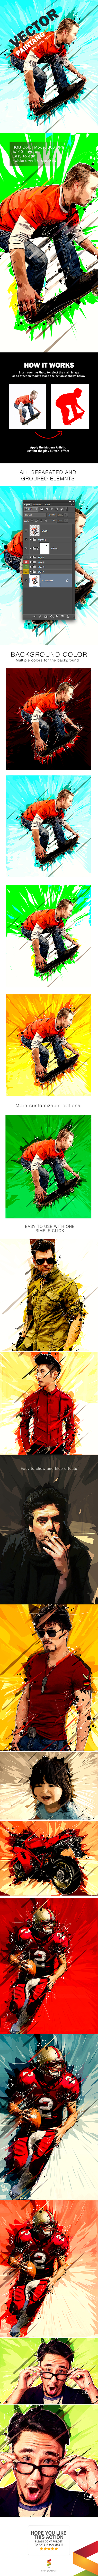 Vector Painting  Photoshop Action - Photo Effects Actions